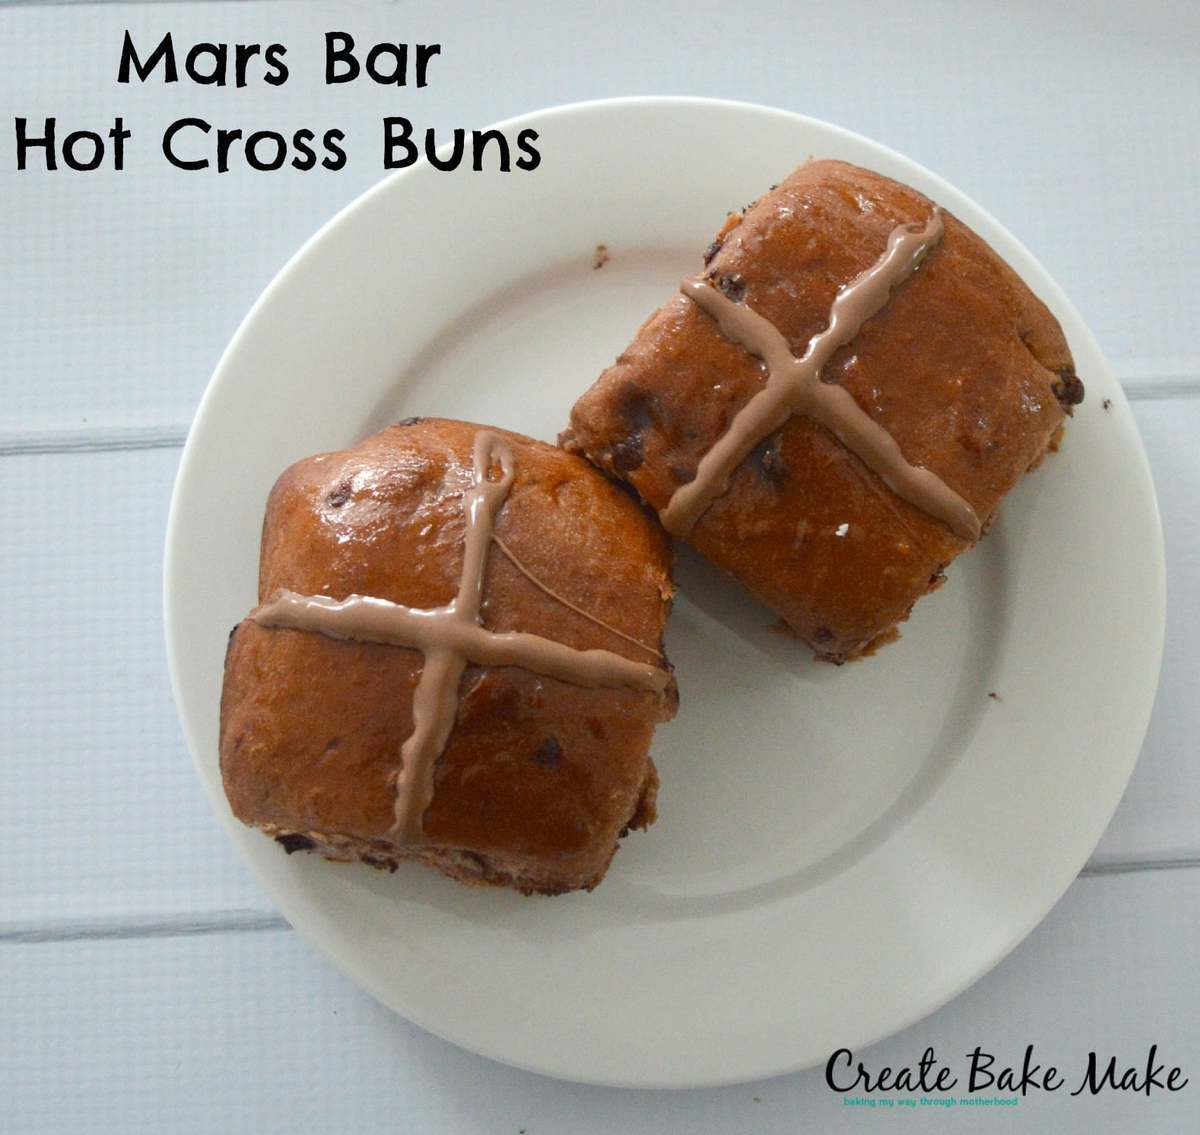 Mars Bar Hot Cross Buns